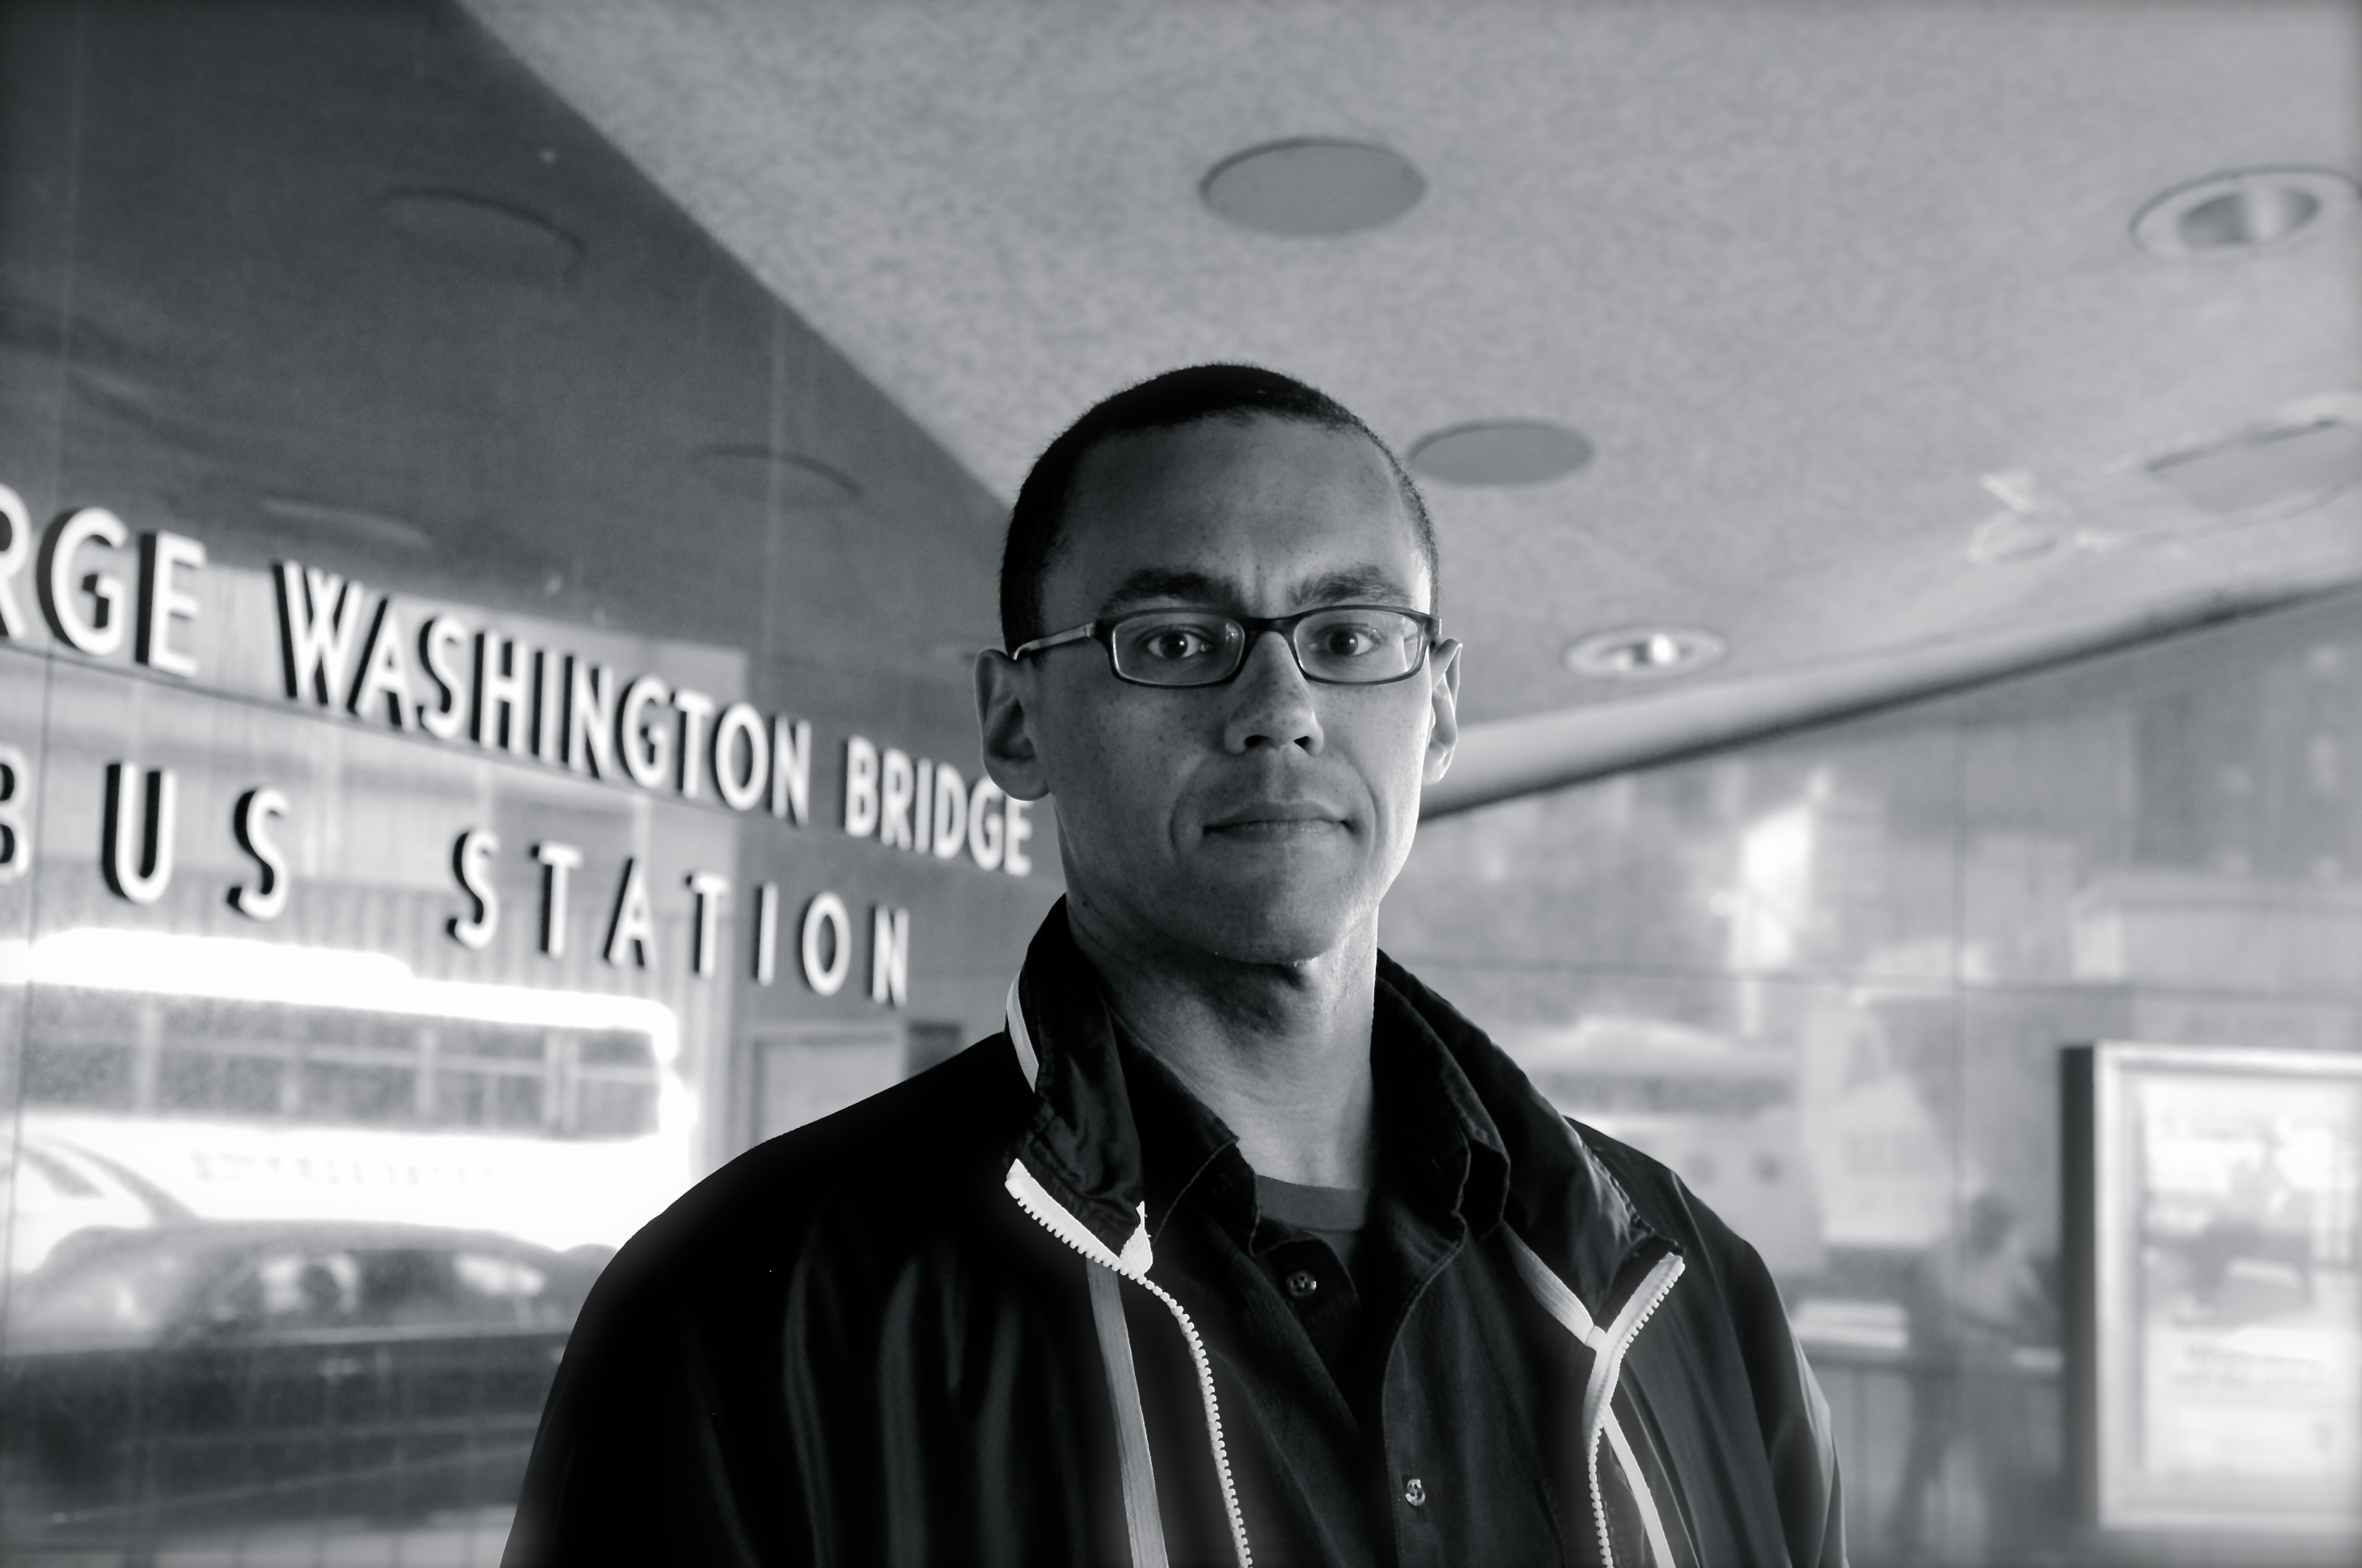 Victor LaValle, photographed by Alyssa Loh